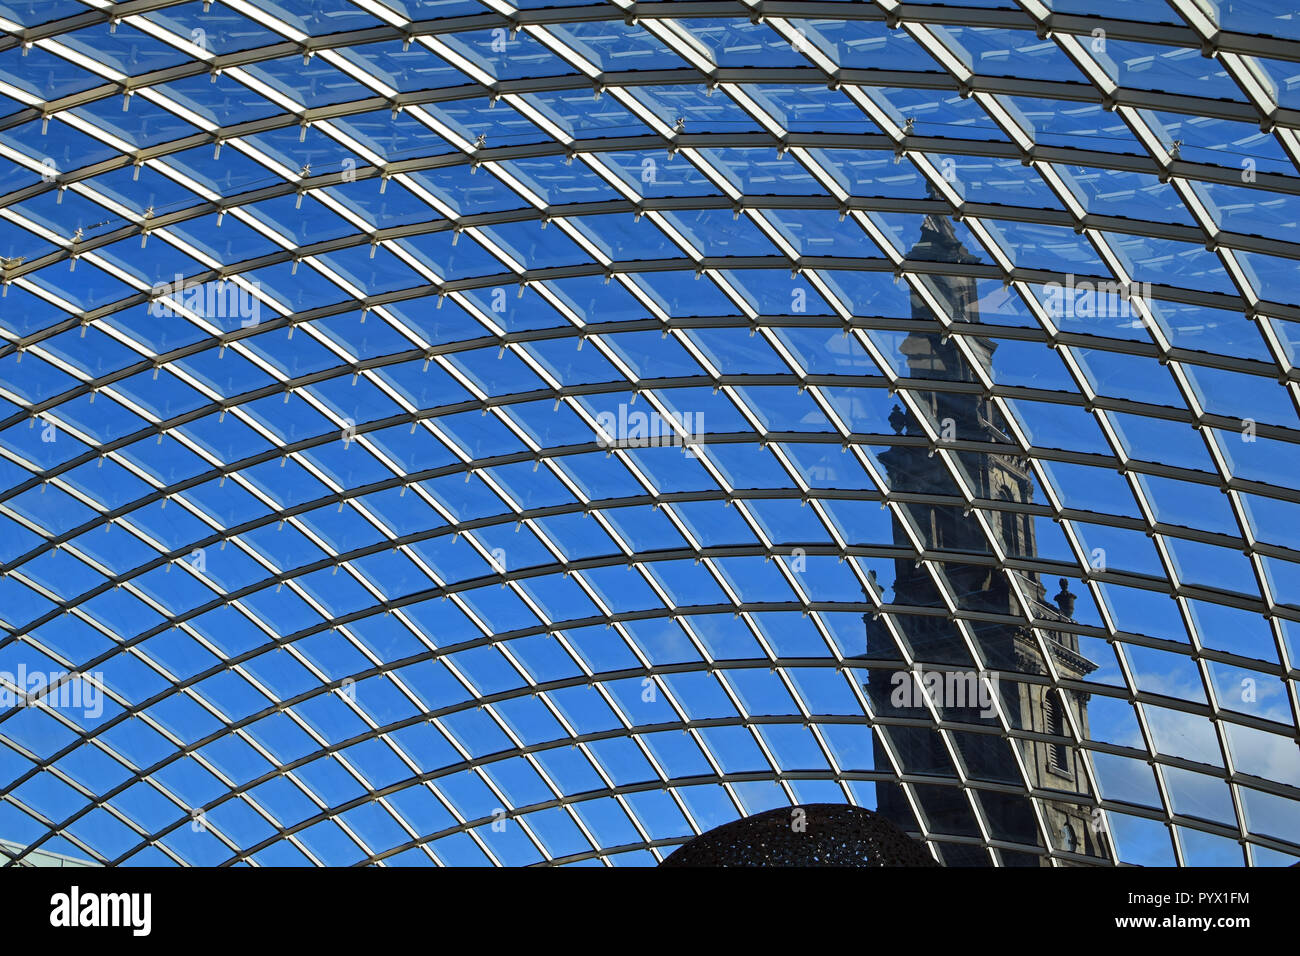 Roof of Trinity Leeds shopping centre, West Yorkshire - Stock Image